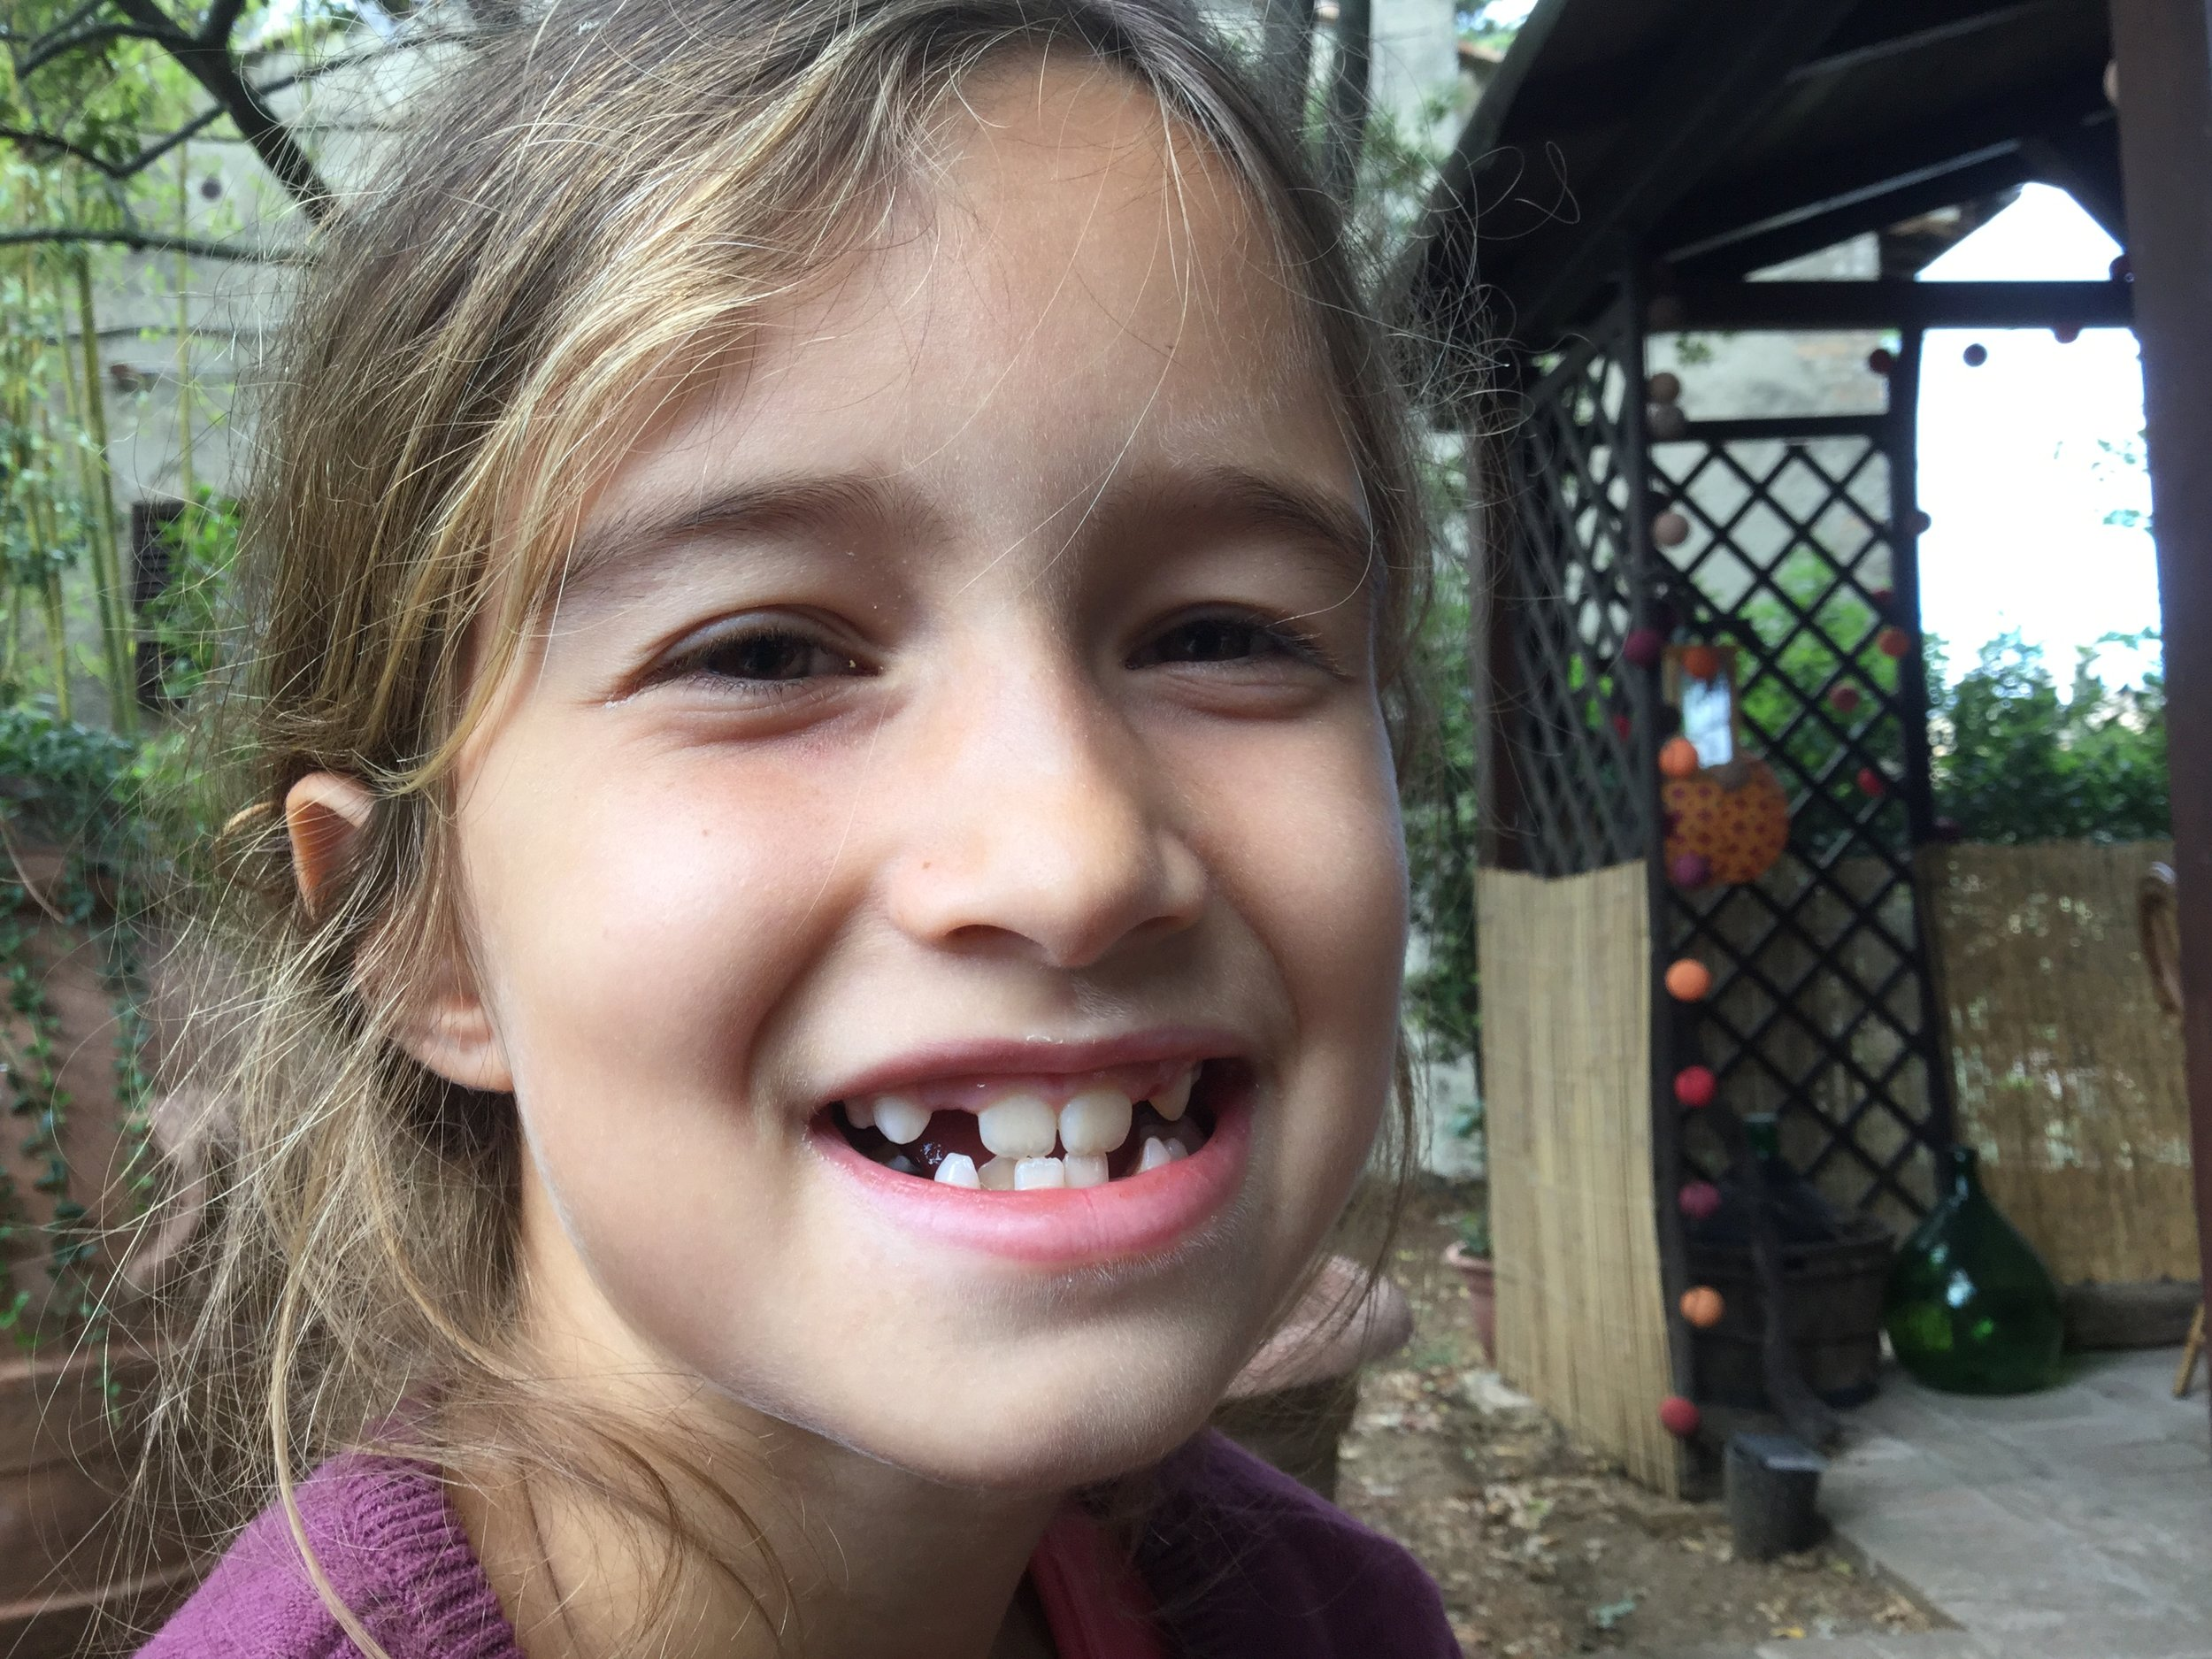 Now I have a tooth...  and now it's out!